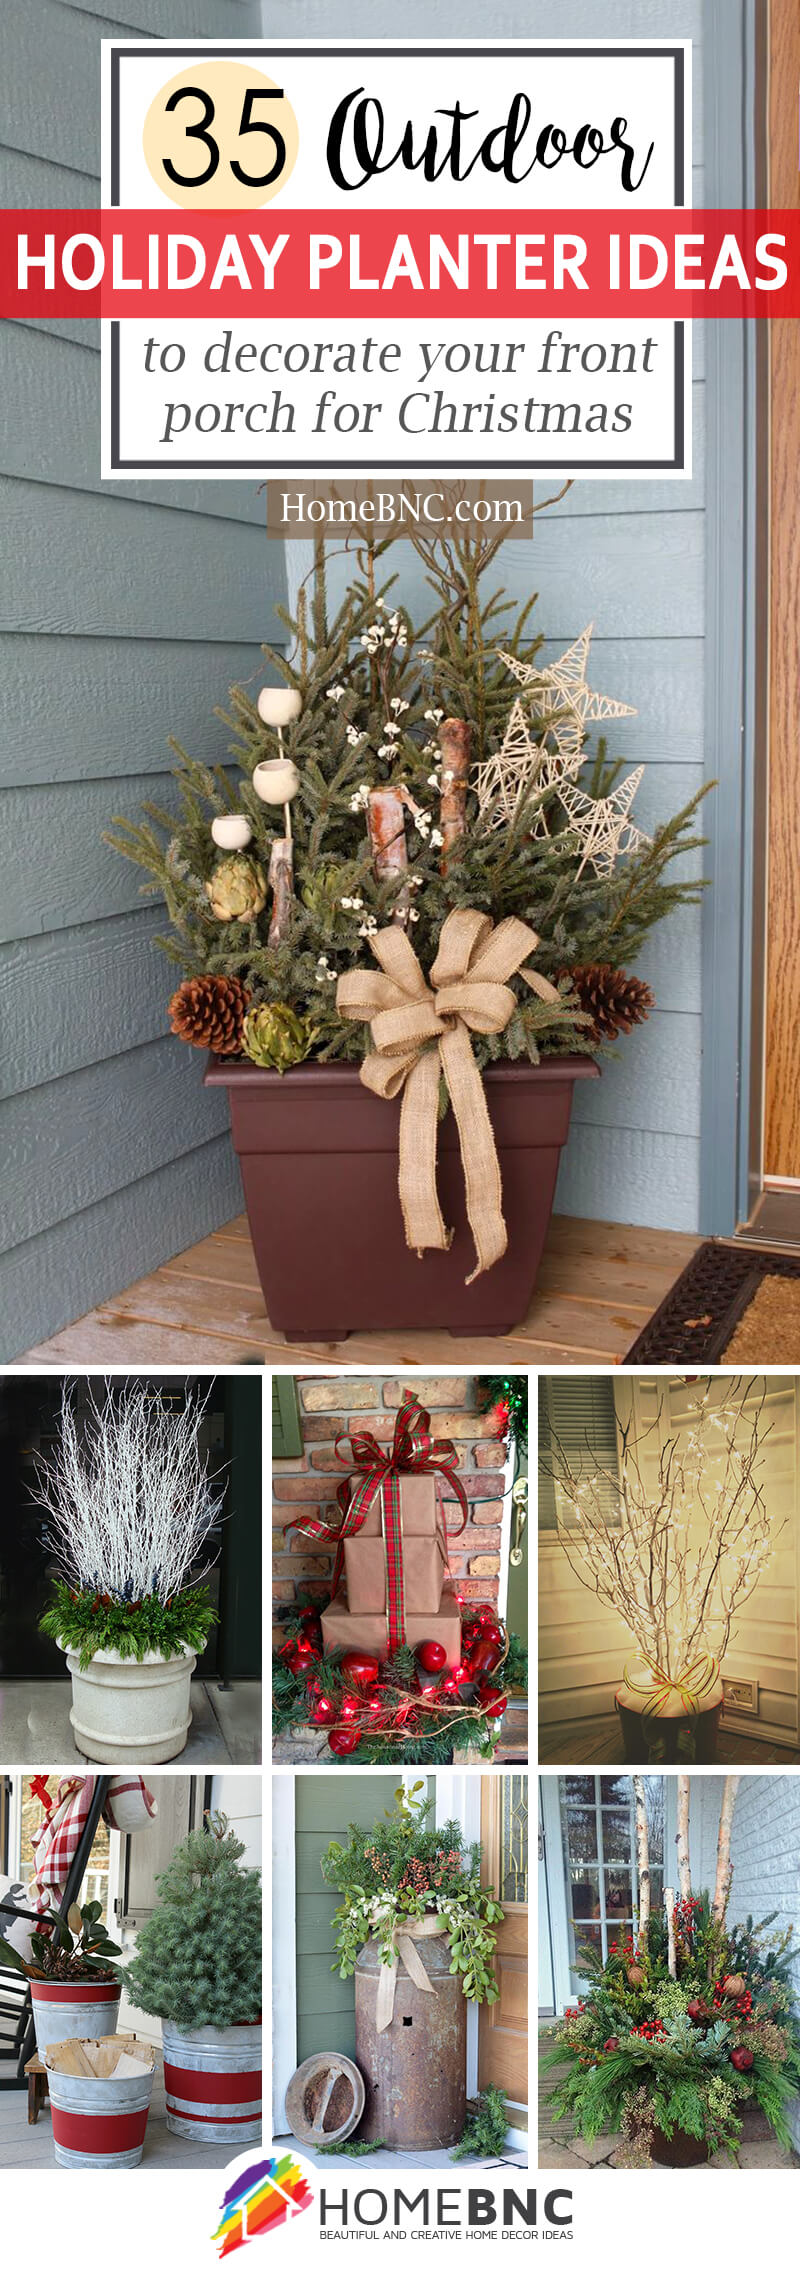 How To Decorate Front Porch Planters For Christmas